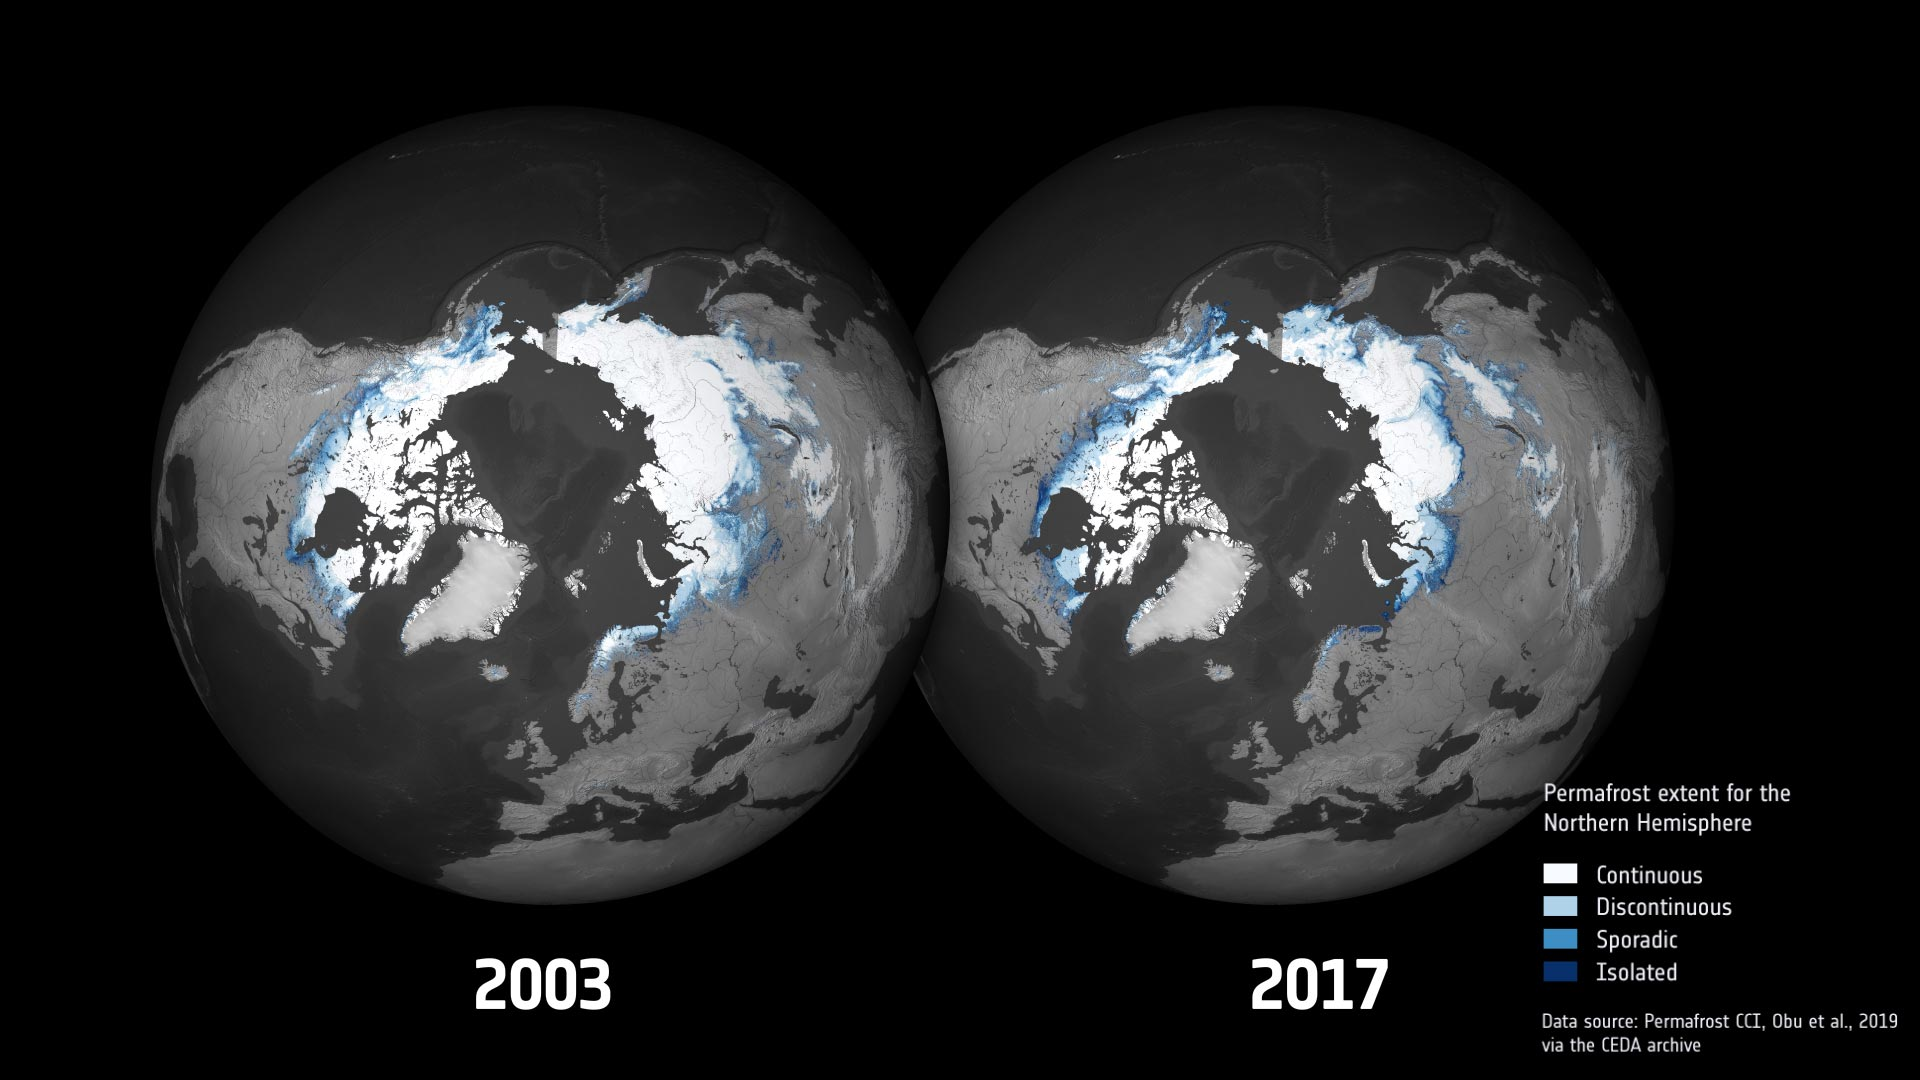 Stunning Animation Shows Permafrost Changes in the Arctic Due to Climate Change - SciTechDaily